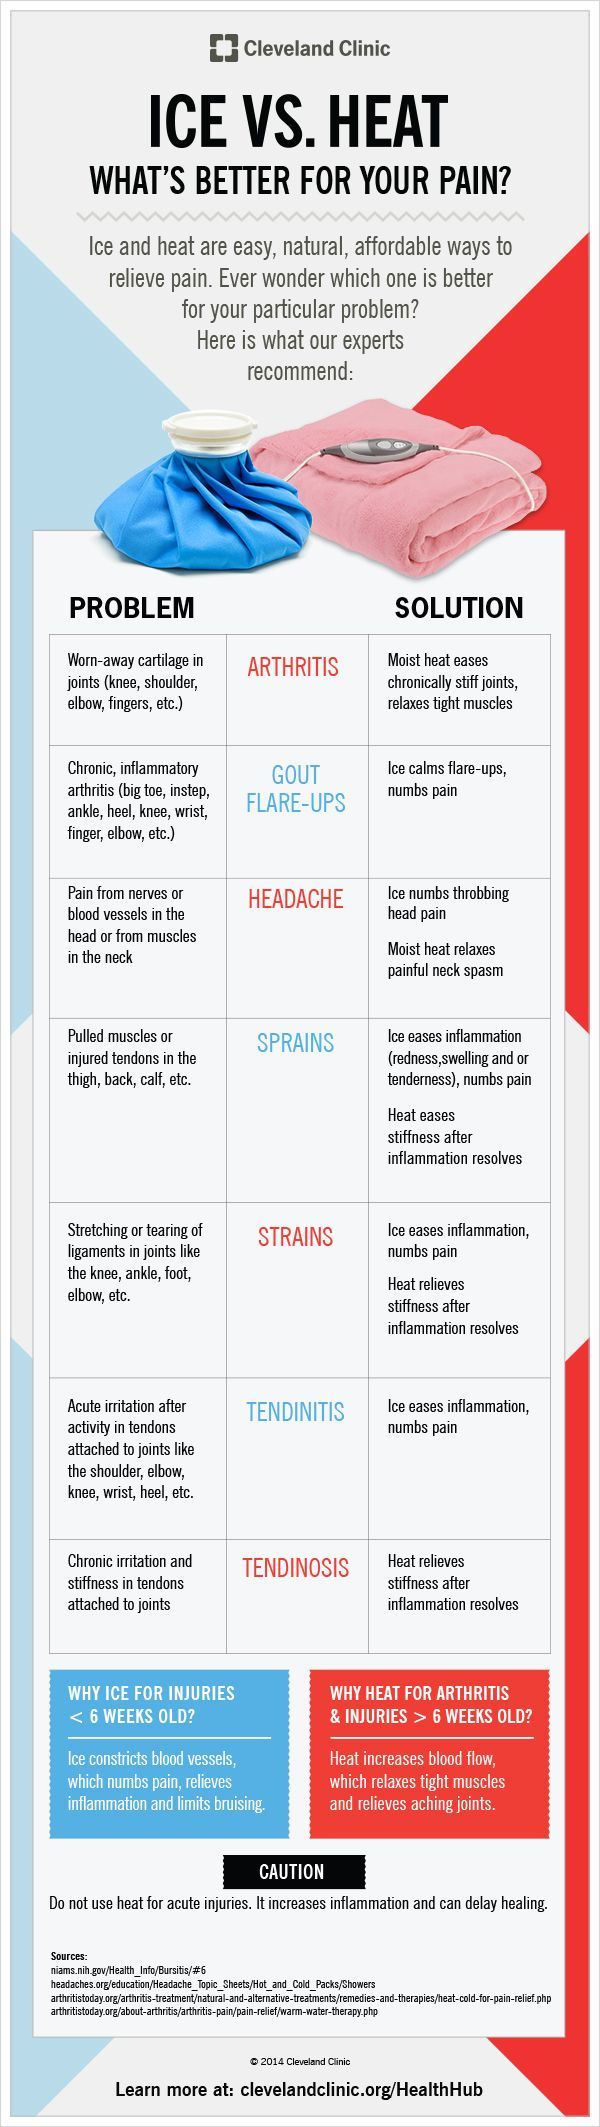 When something hurts, will ice or heat make it feel better? Infographic on HealthHub from Cleveland Clinic